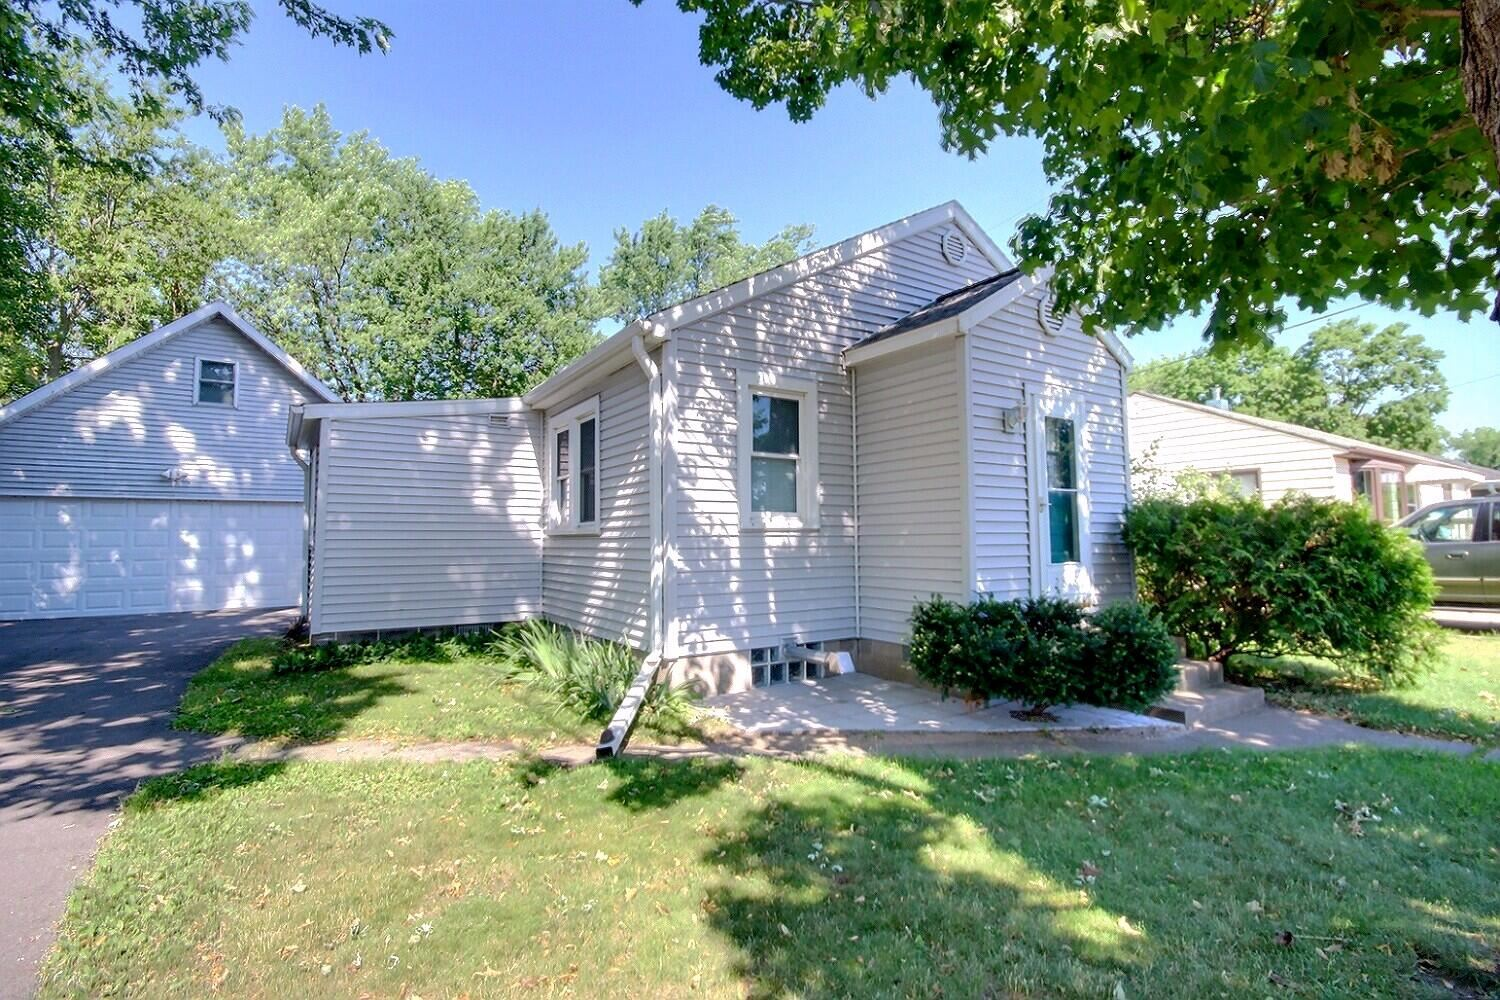 2818 27th St S, Shelby, WI 54601 - MLS#: 1745453